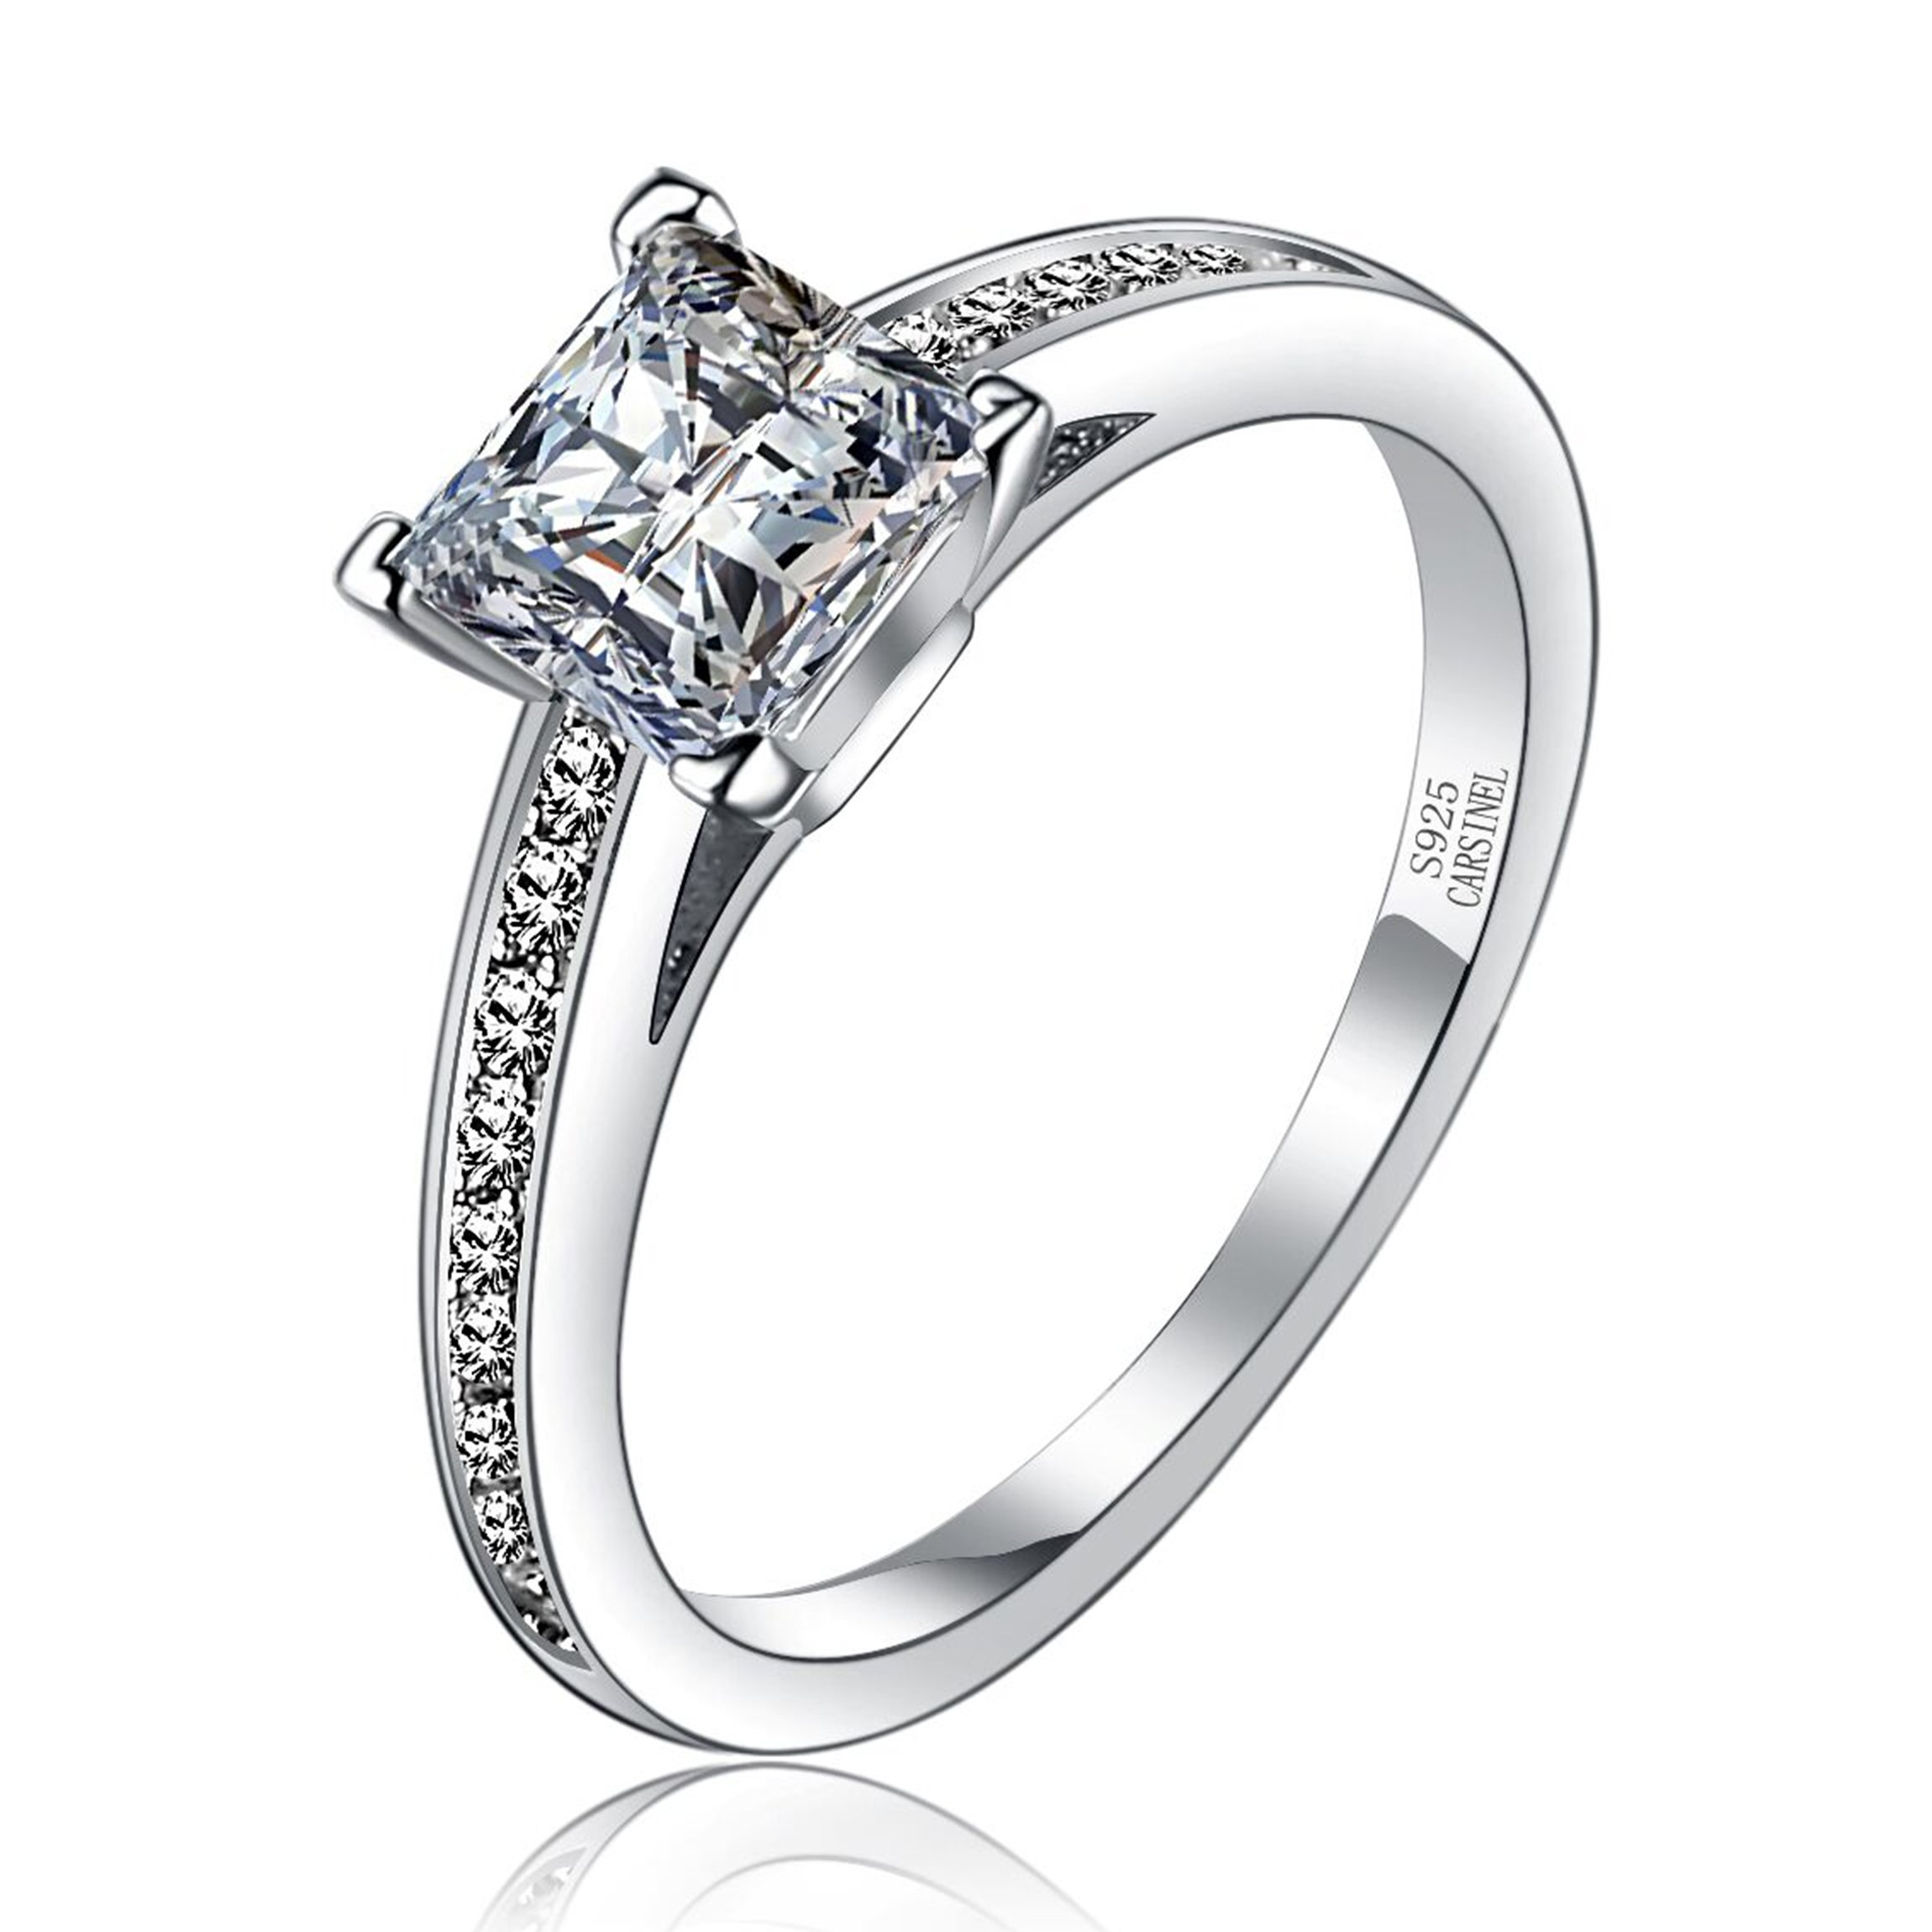 CARSINEL 1.25 Carat Princess Cut Cubic Zirconia 925 Sterling Silver Promise Wedding Engagement Ring Sizes 5 to 8 (6)